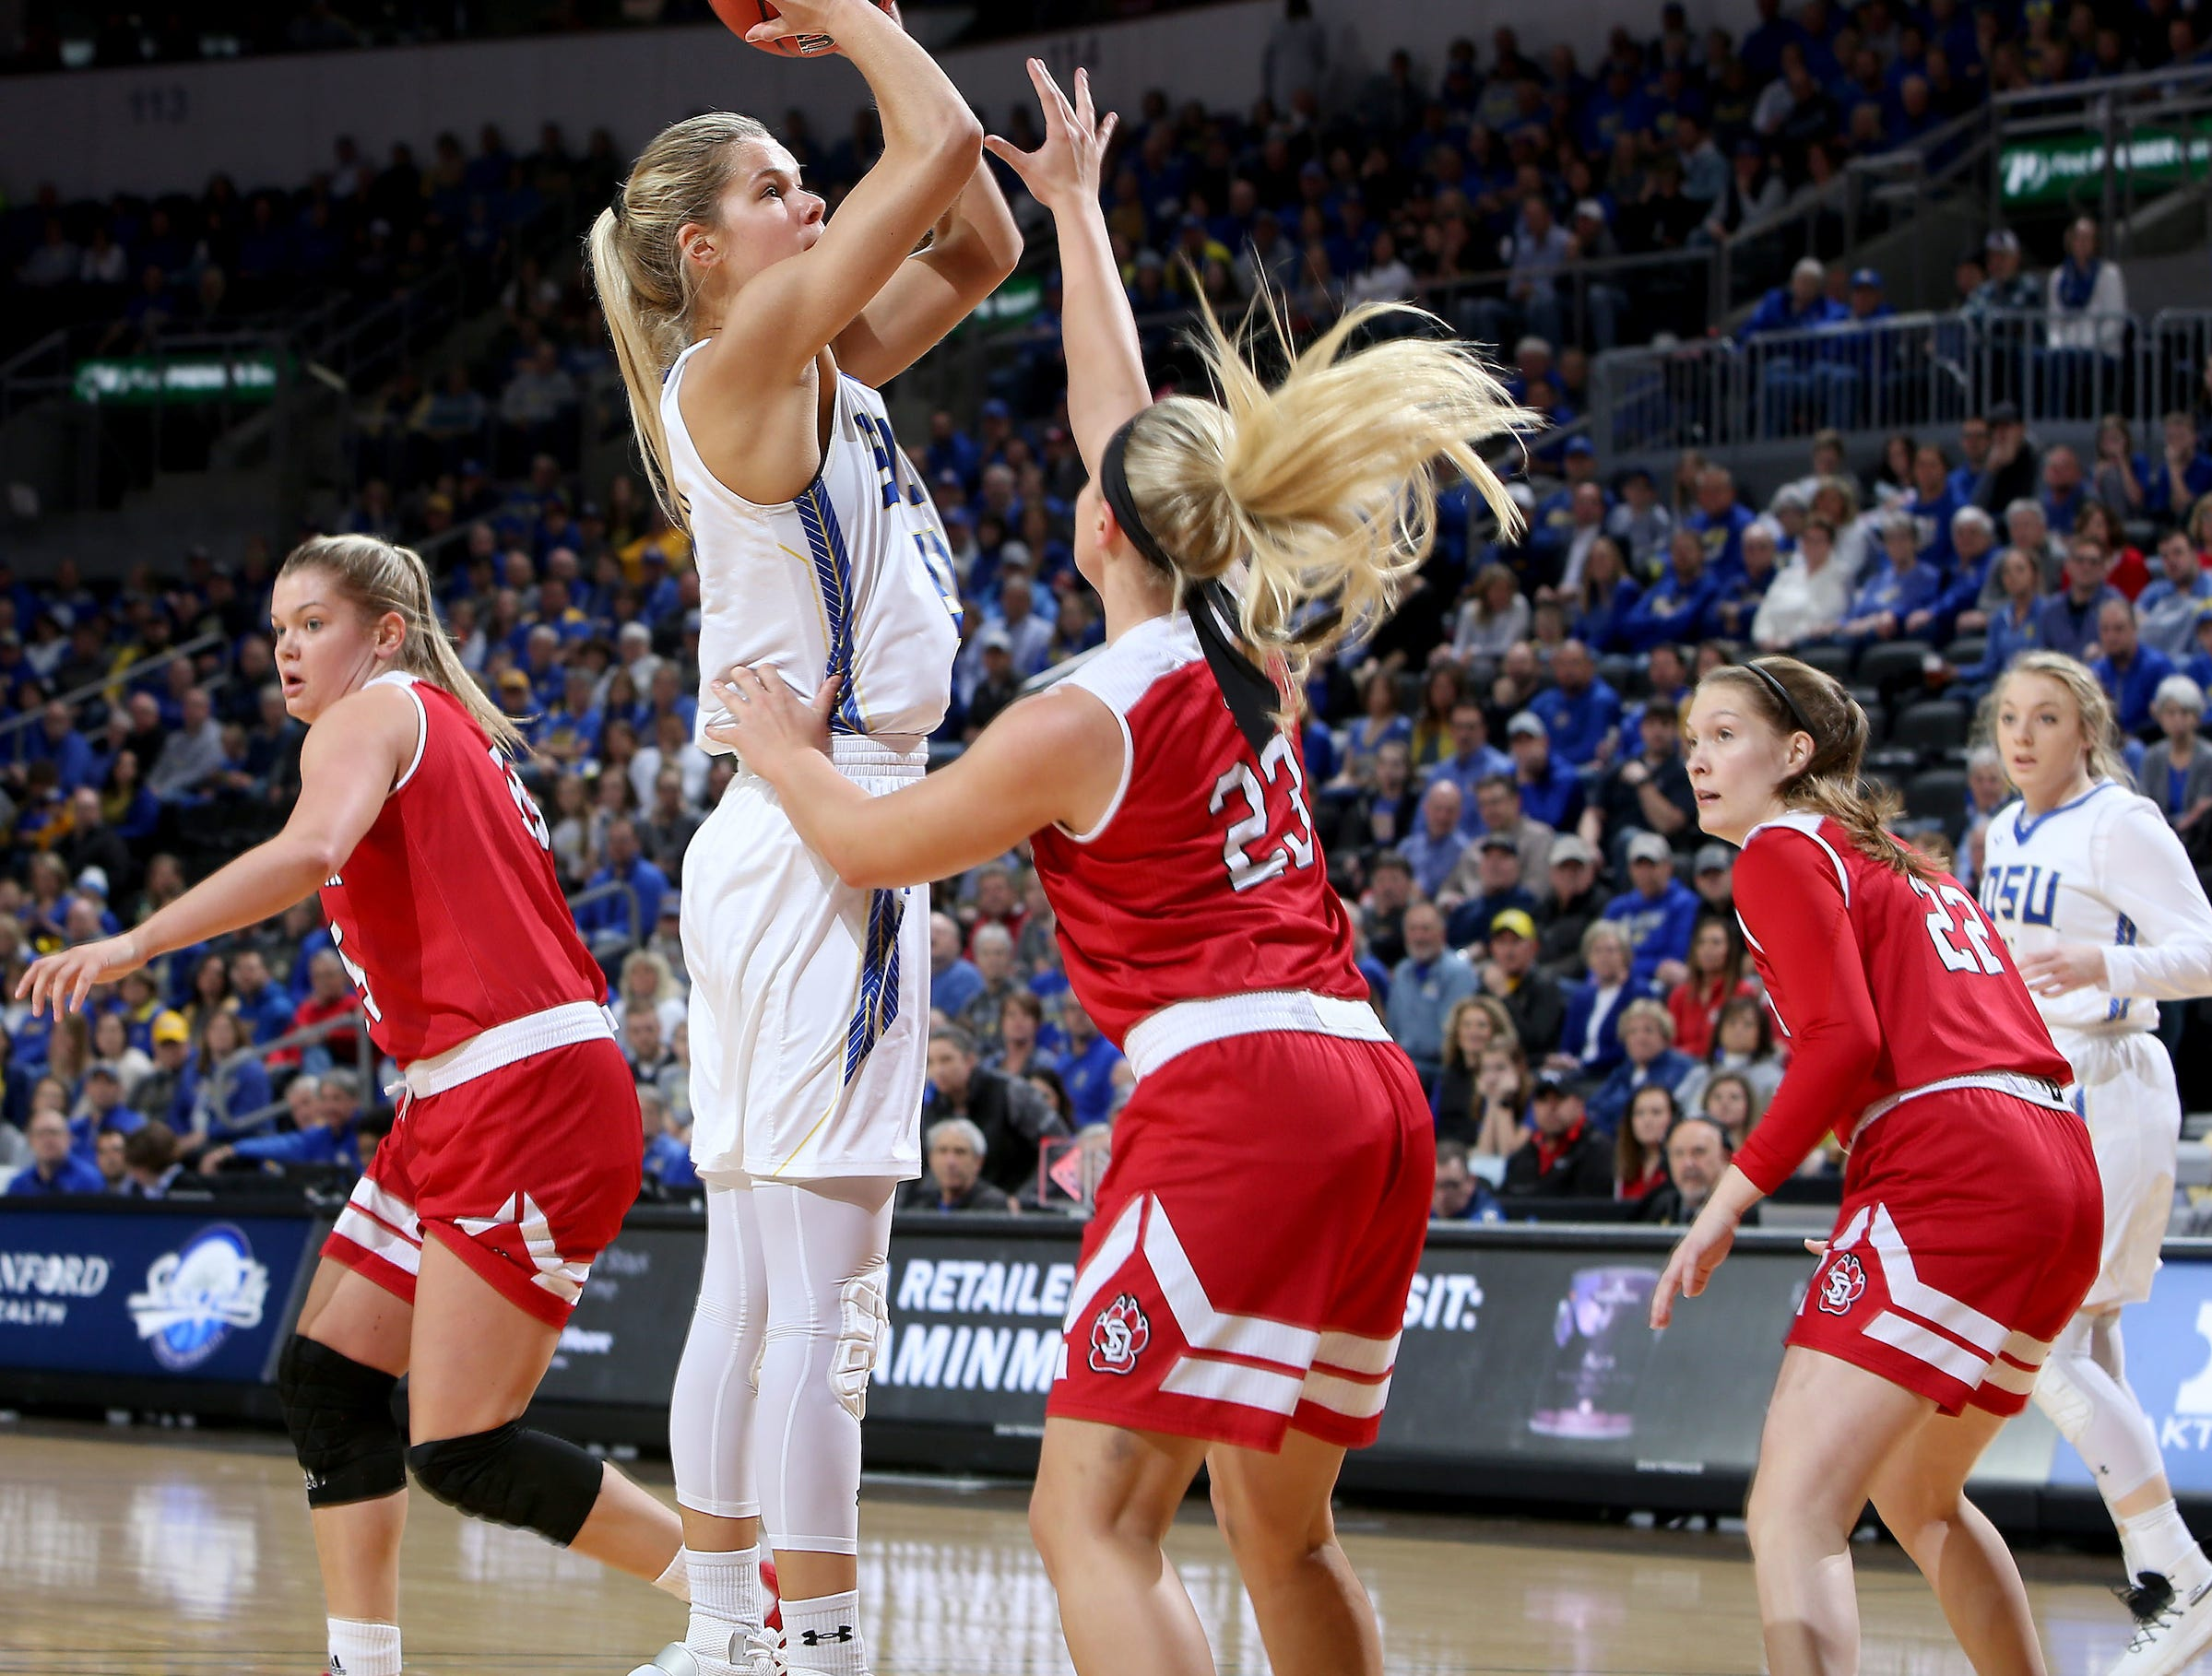 SIOUX FALLS, SD - MARCH 11: Tylee Irwin #21 from South Dakota State shoots over Madison McKeever#23 from South Dakota at the 2019 Summit League Basketball Tournament at the Denny Sanford Premier Center in Sioux Falls. (Photo by Dave Eggen/Inertia)